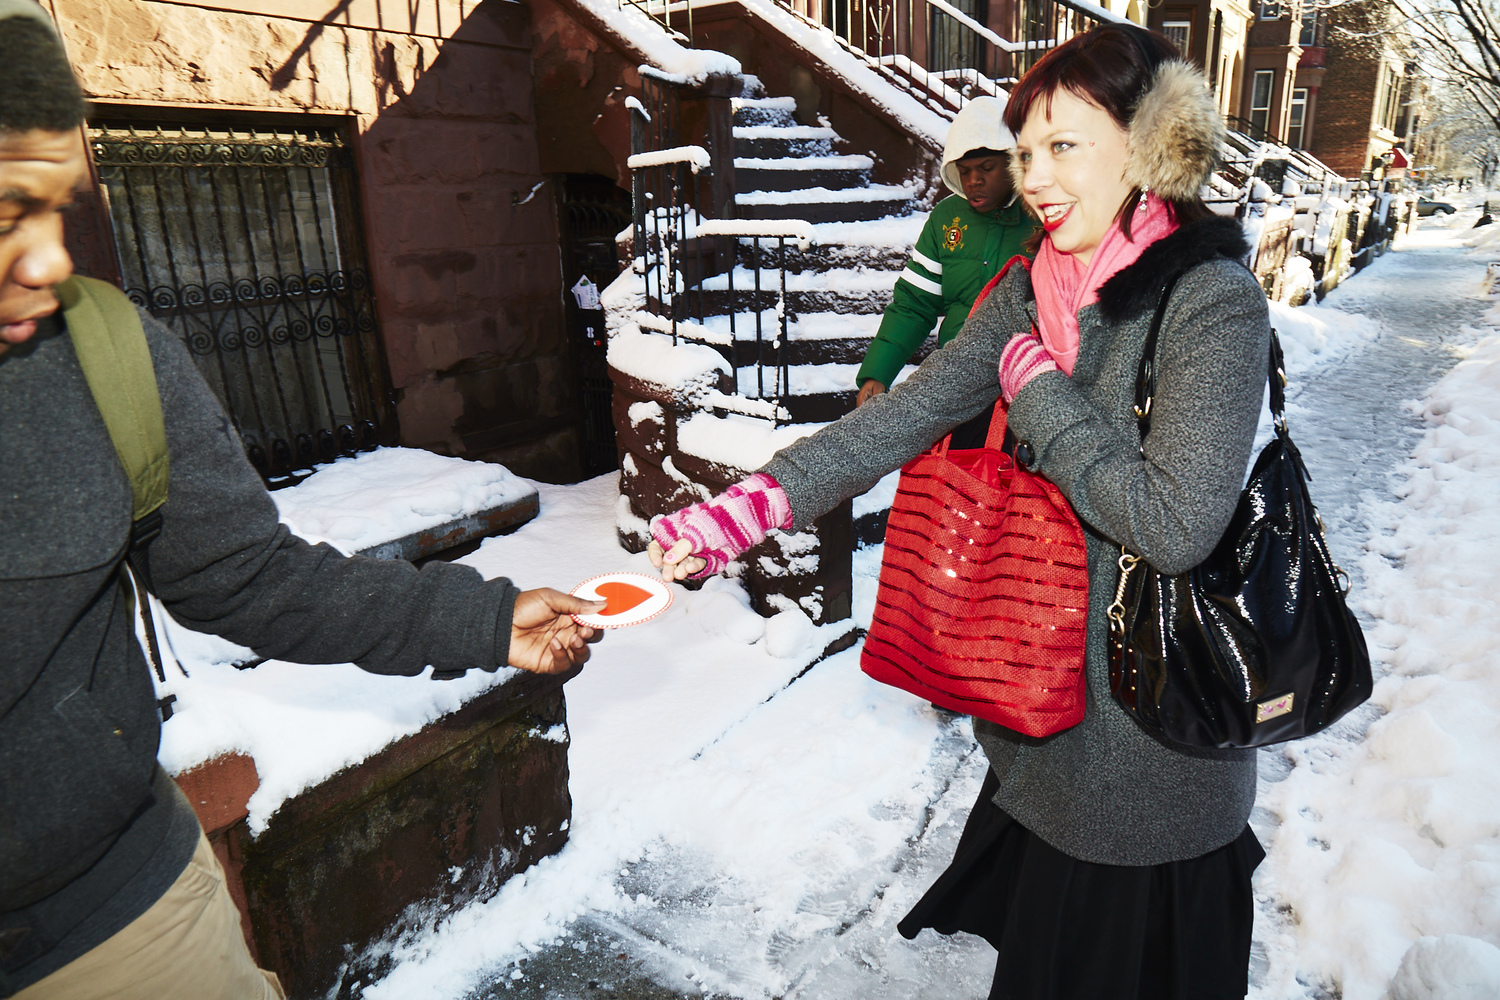 Join an Army of Lovers to hand out valentines to strangers